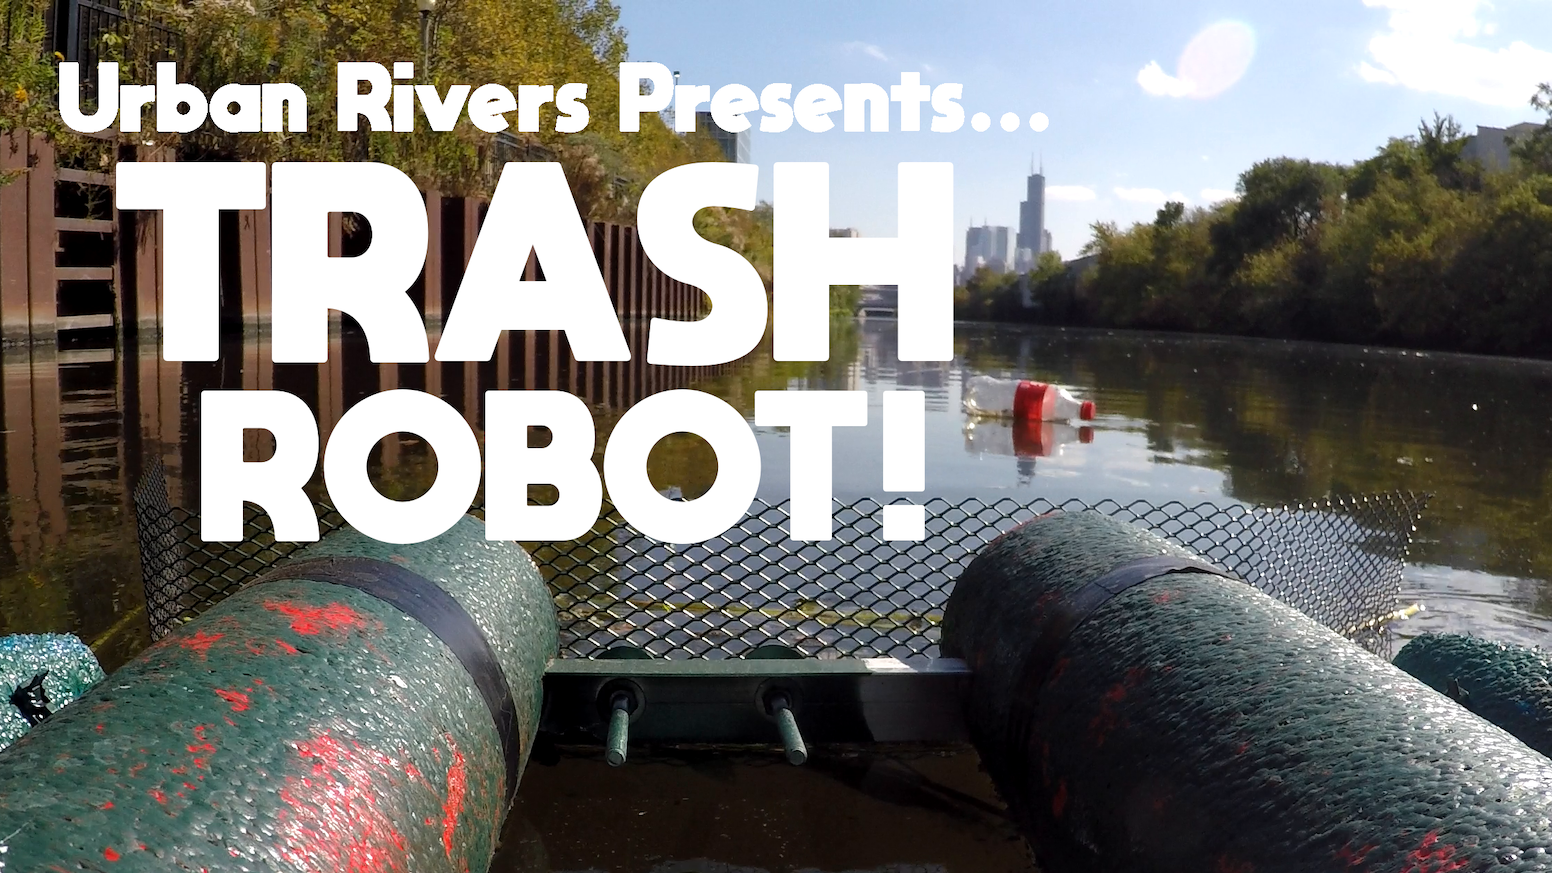 Trash cleaning robot controlled by you  by Urban Rivers — Kickstarter